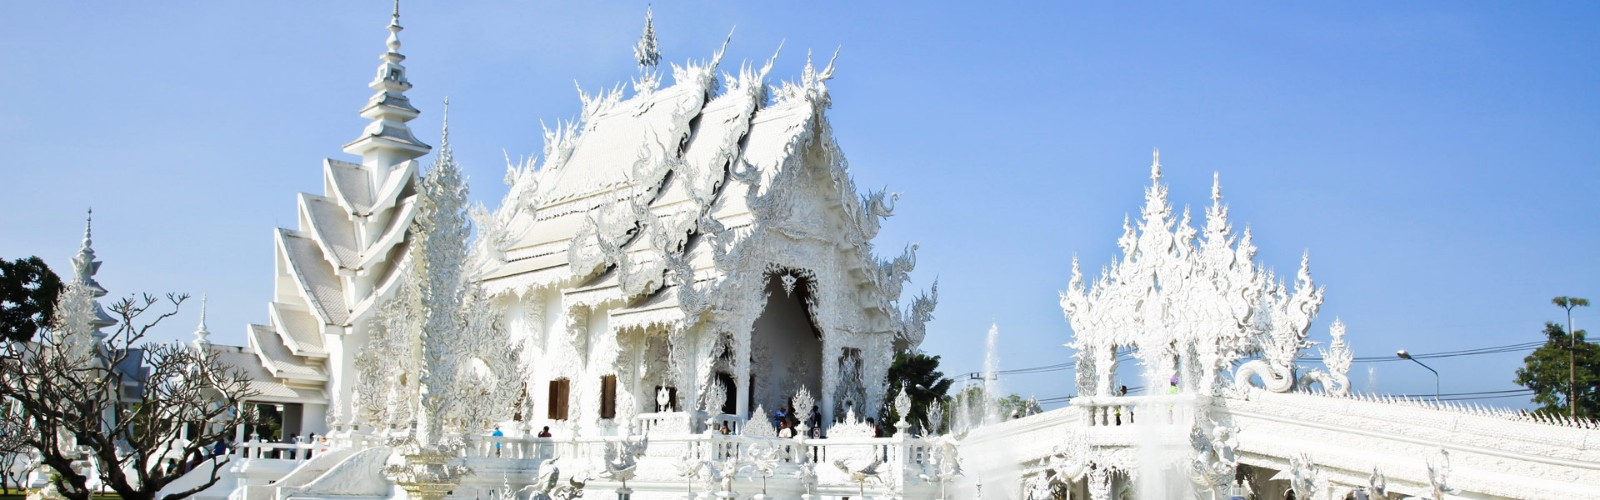 Thailand & Laos Adventure Tour | Wendy Wu Tours